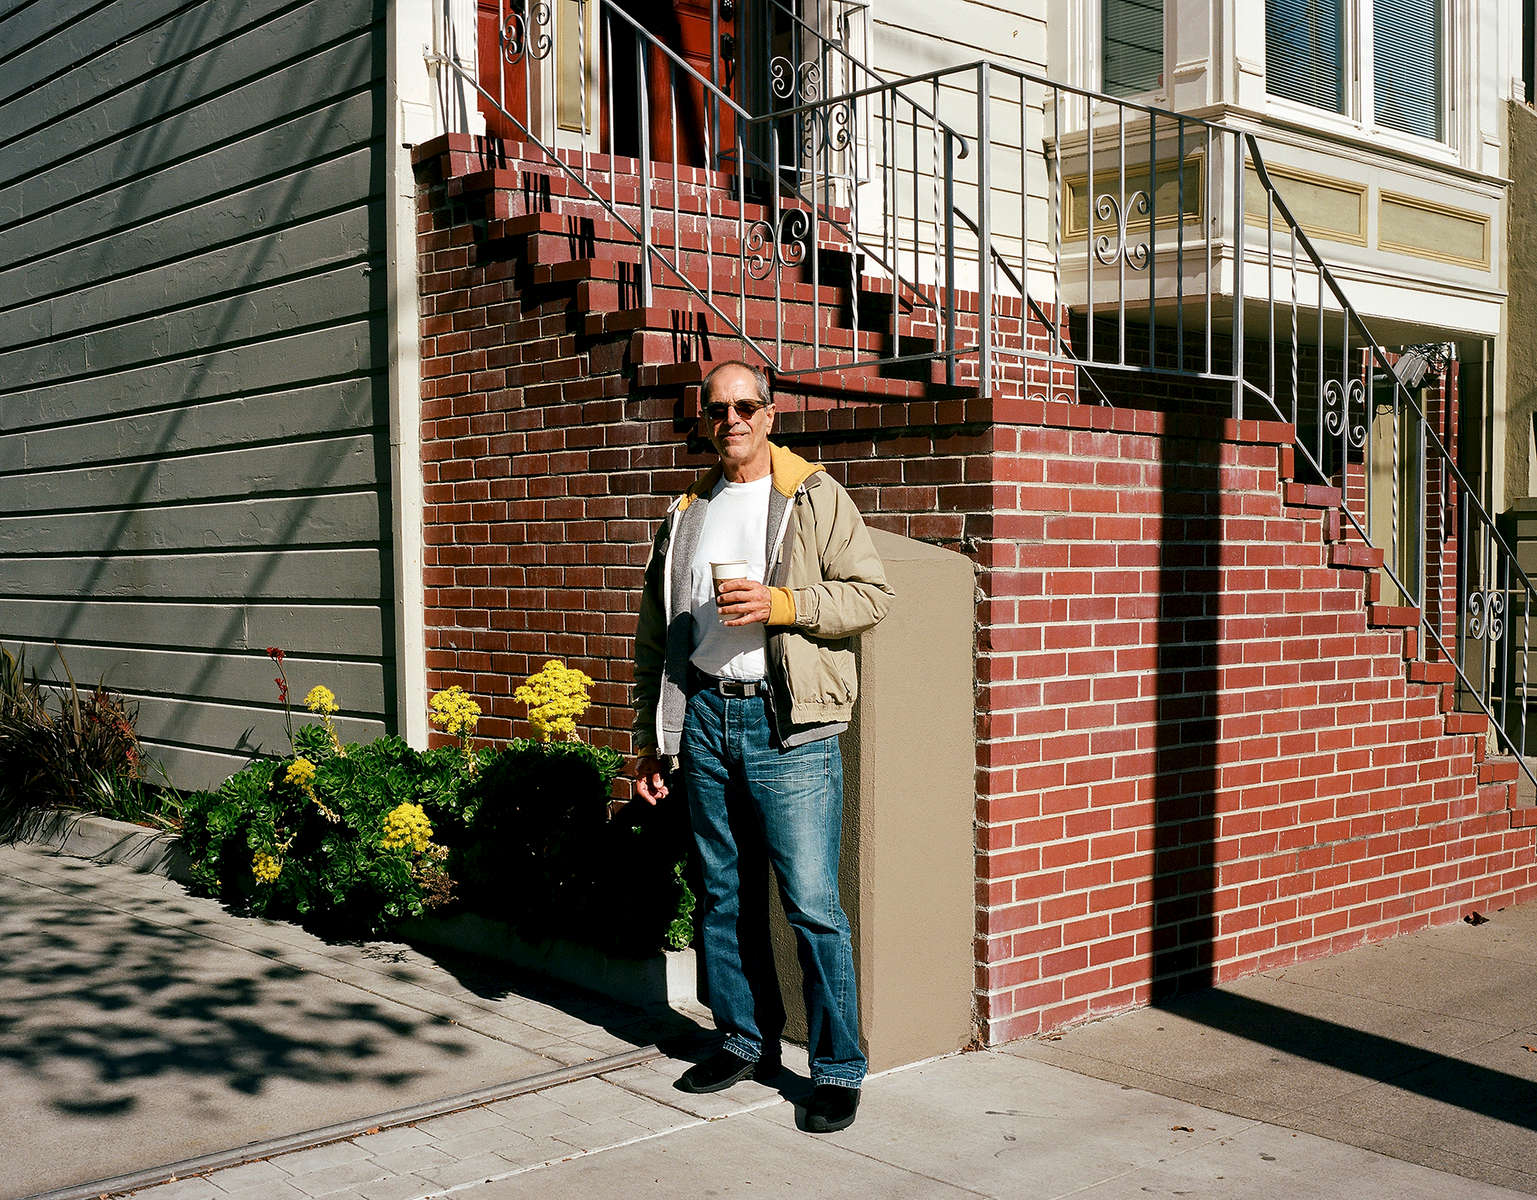 Harry Breaux stands near his home in San Francisco, Calif. on November 9, 2016. Breaux was one of the men featured in the Chronicle's first feature film called Last Men Standing about long-term HIV survivors.